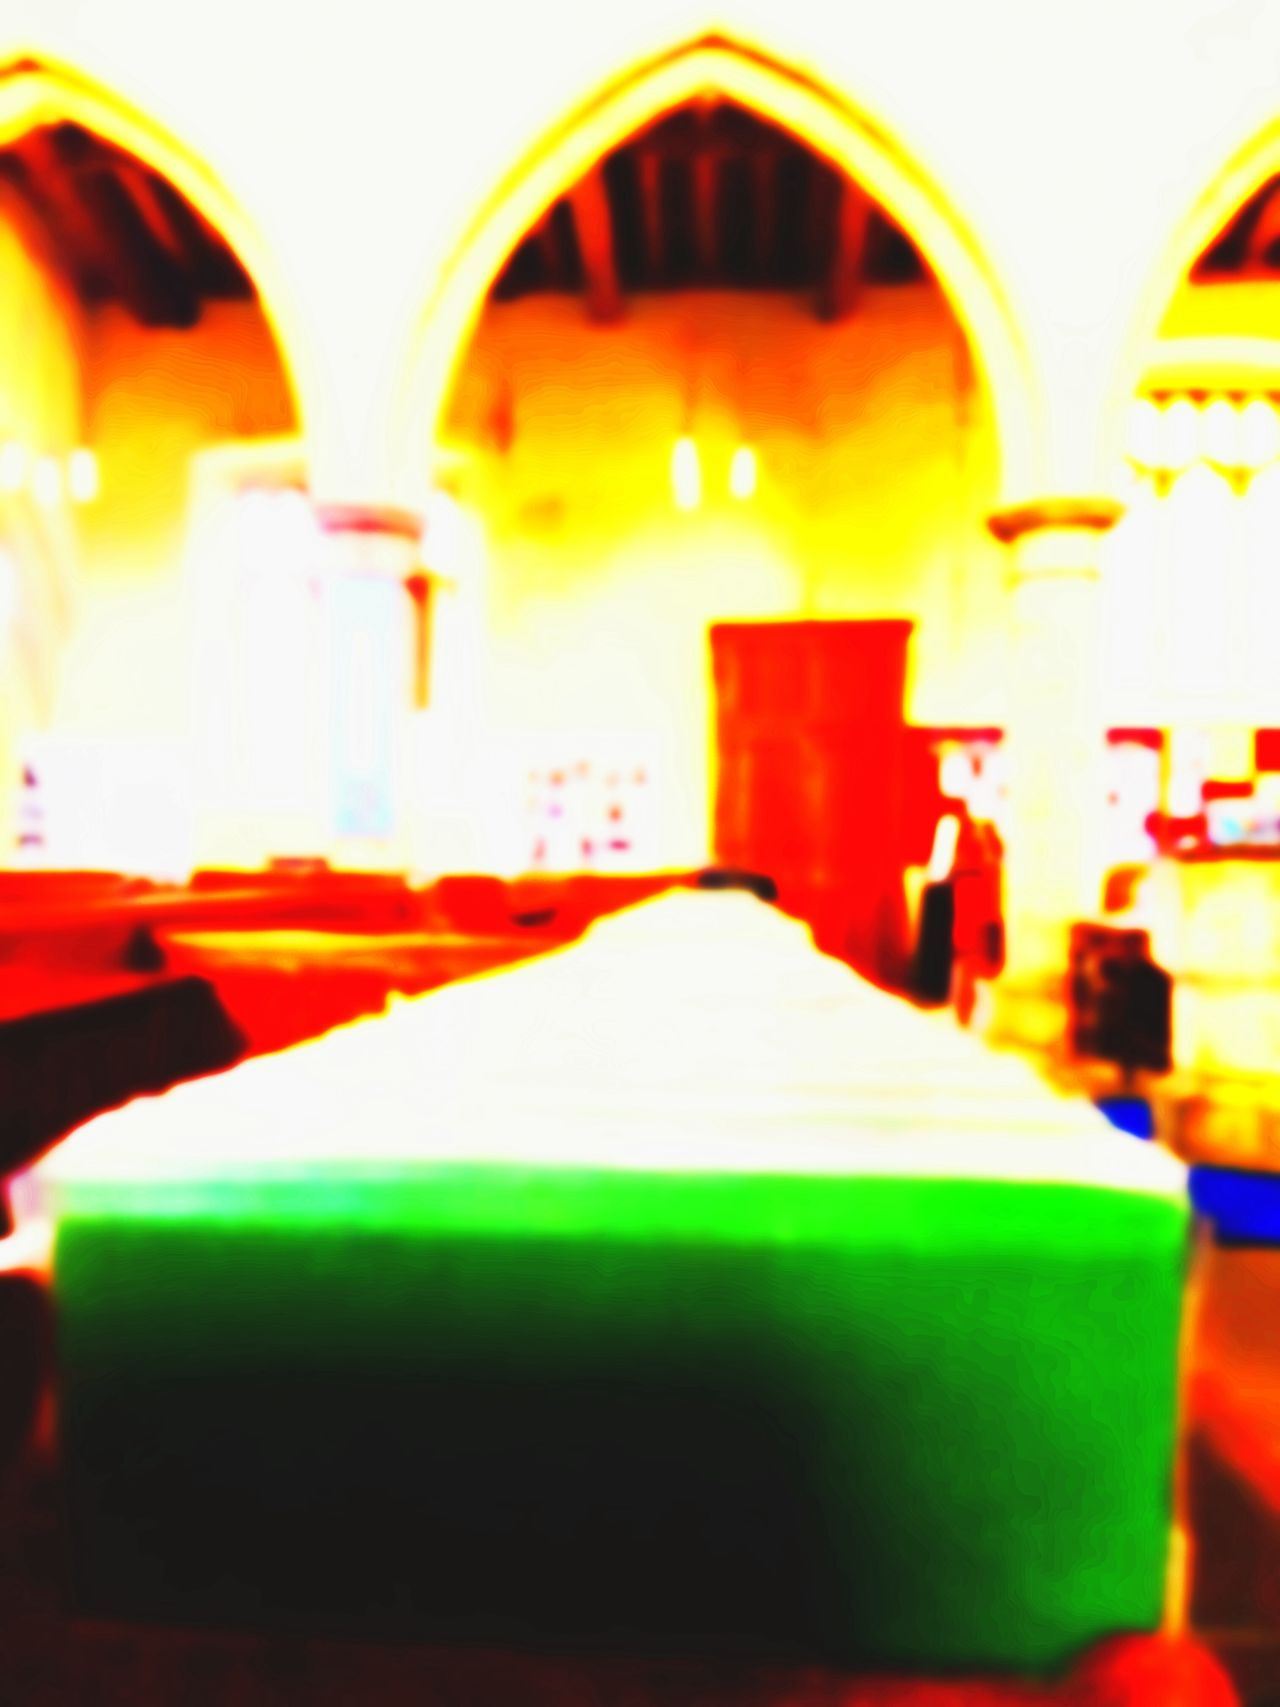 It's a church but not as know it :) Churchporn Unusual That's Me Check This Out Inside Of A Church Bright_and_bold Rich Colours Surrealism Abstract Photography Glaringley Bright Blurry Blurred Unfocused Photo EyeEm Best Shots Collectable Not Serious But Like